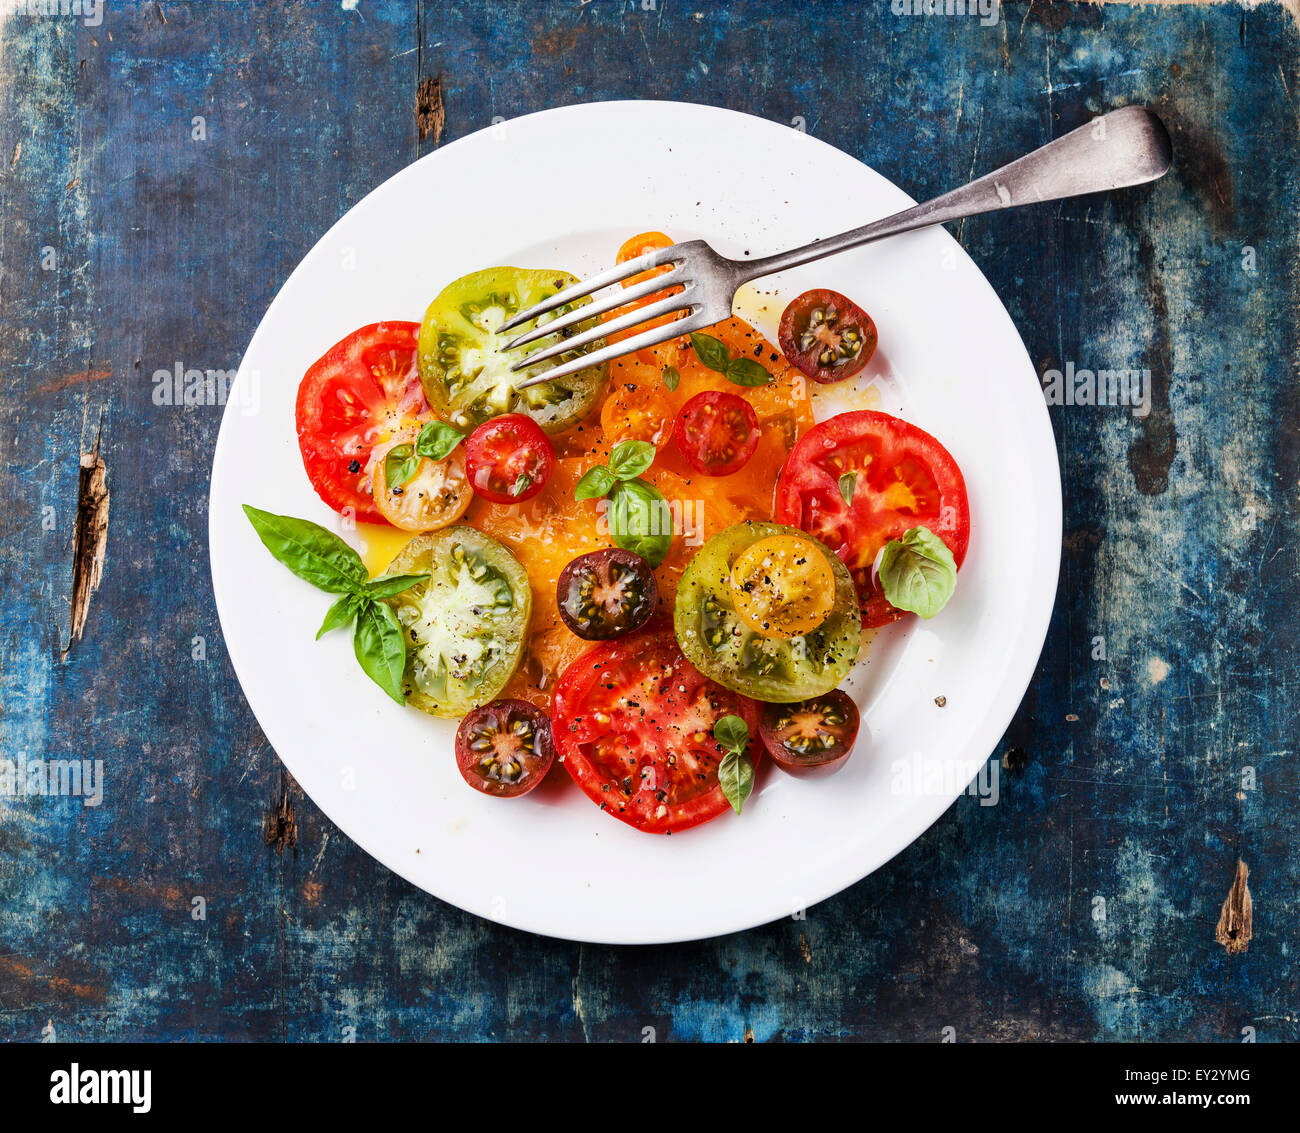 Ripe fresh colorful tomatoes salad with olive oil and basil on blue wooden background - Stock Image